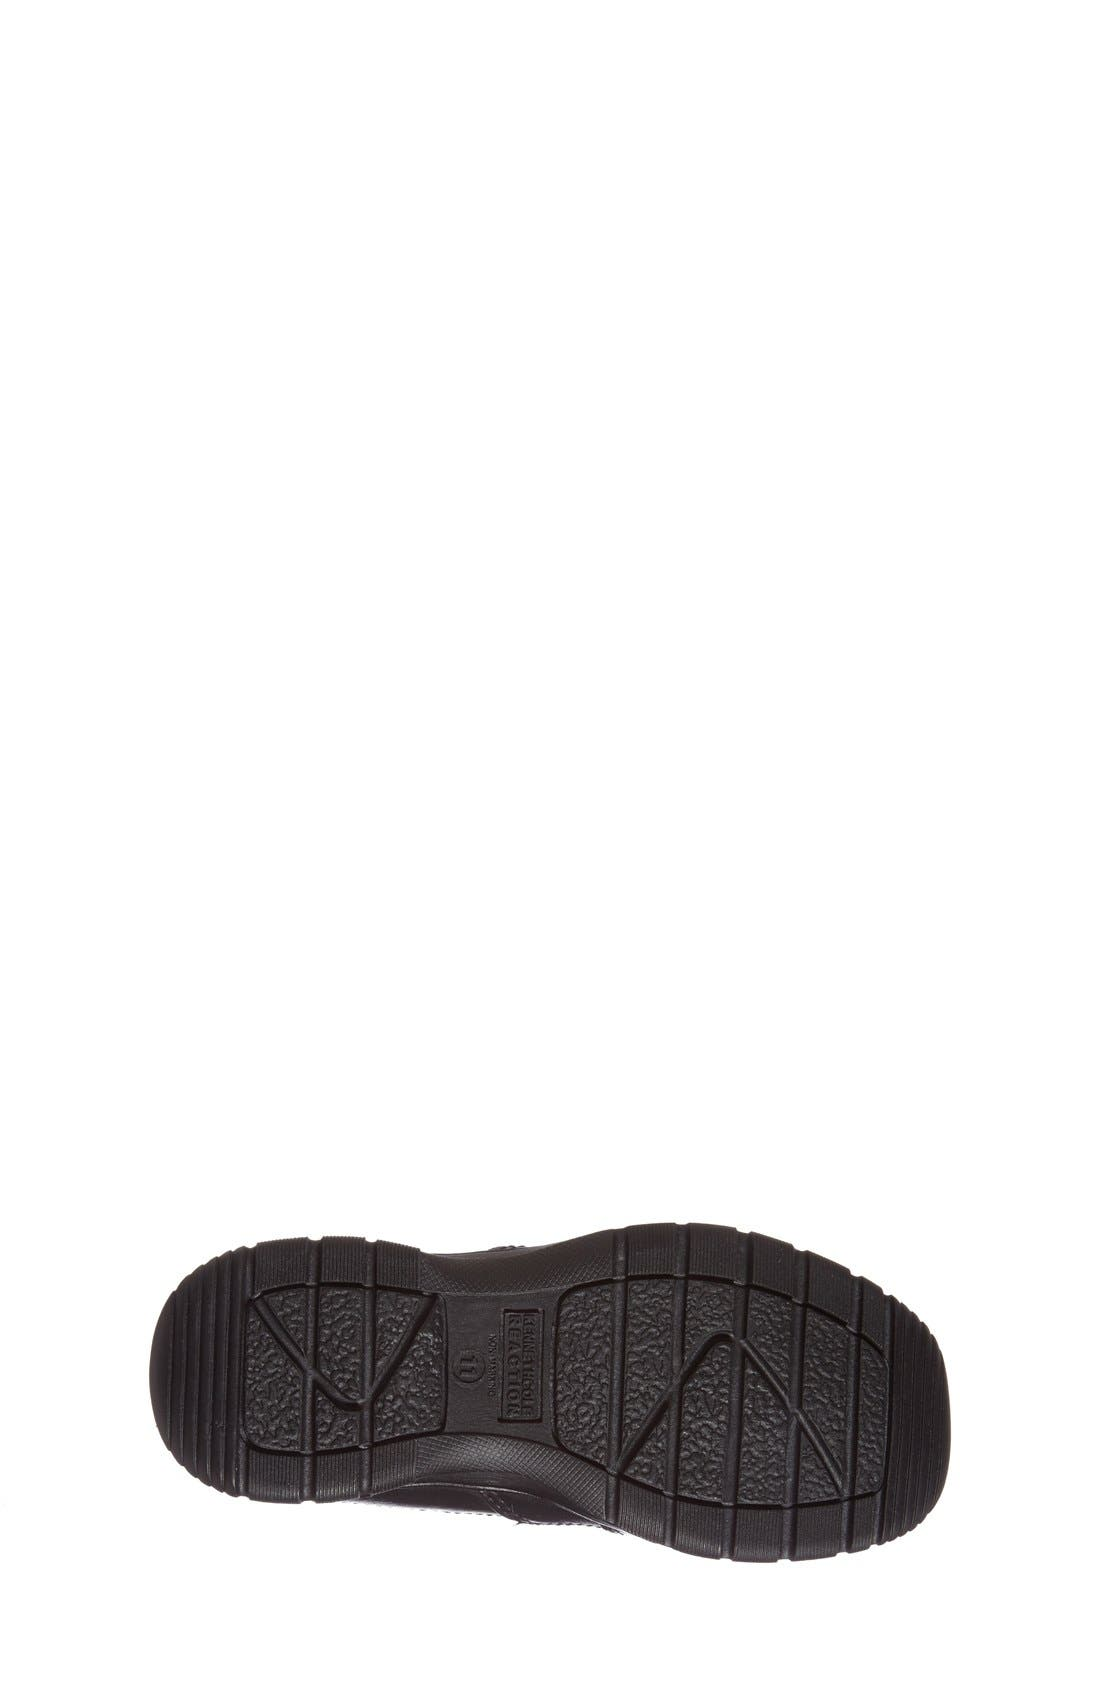 Reaction Kenneth Cole'Check N Check' Loafer,                             Alternate thumbnail 4, color,                             001